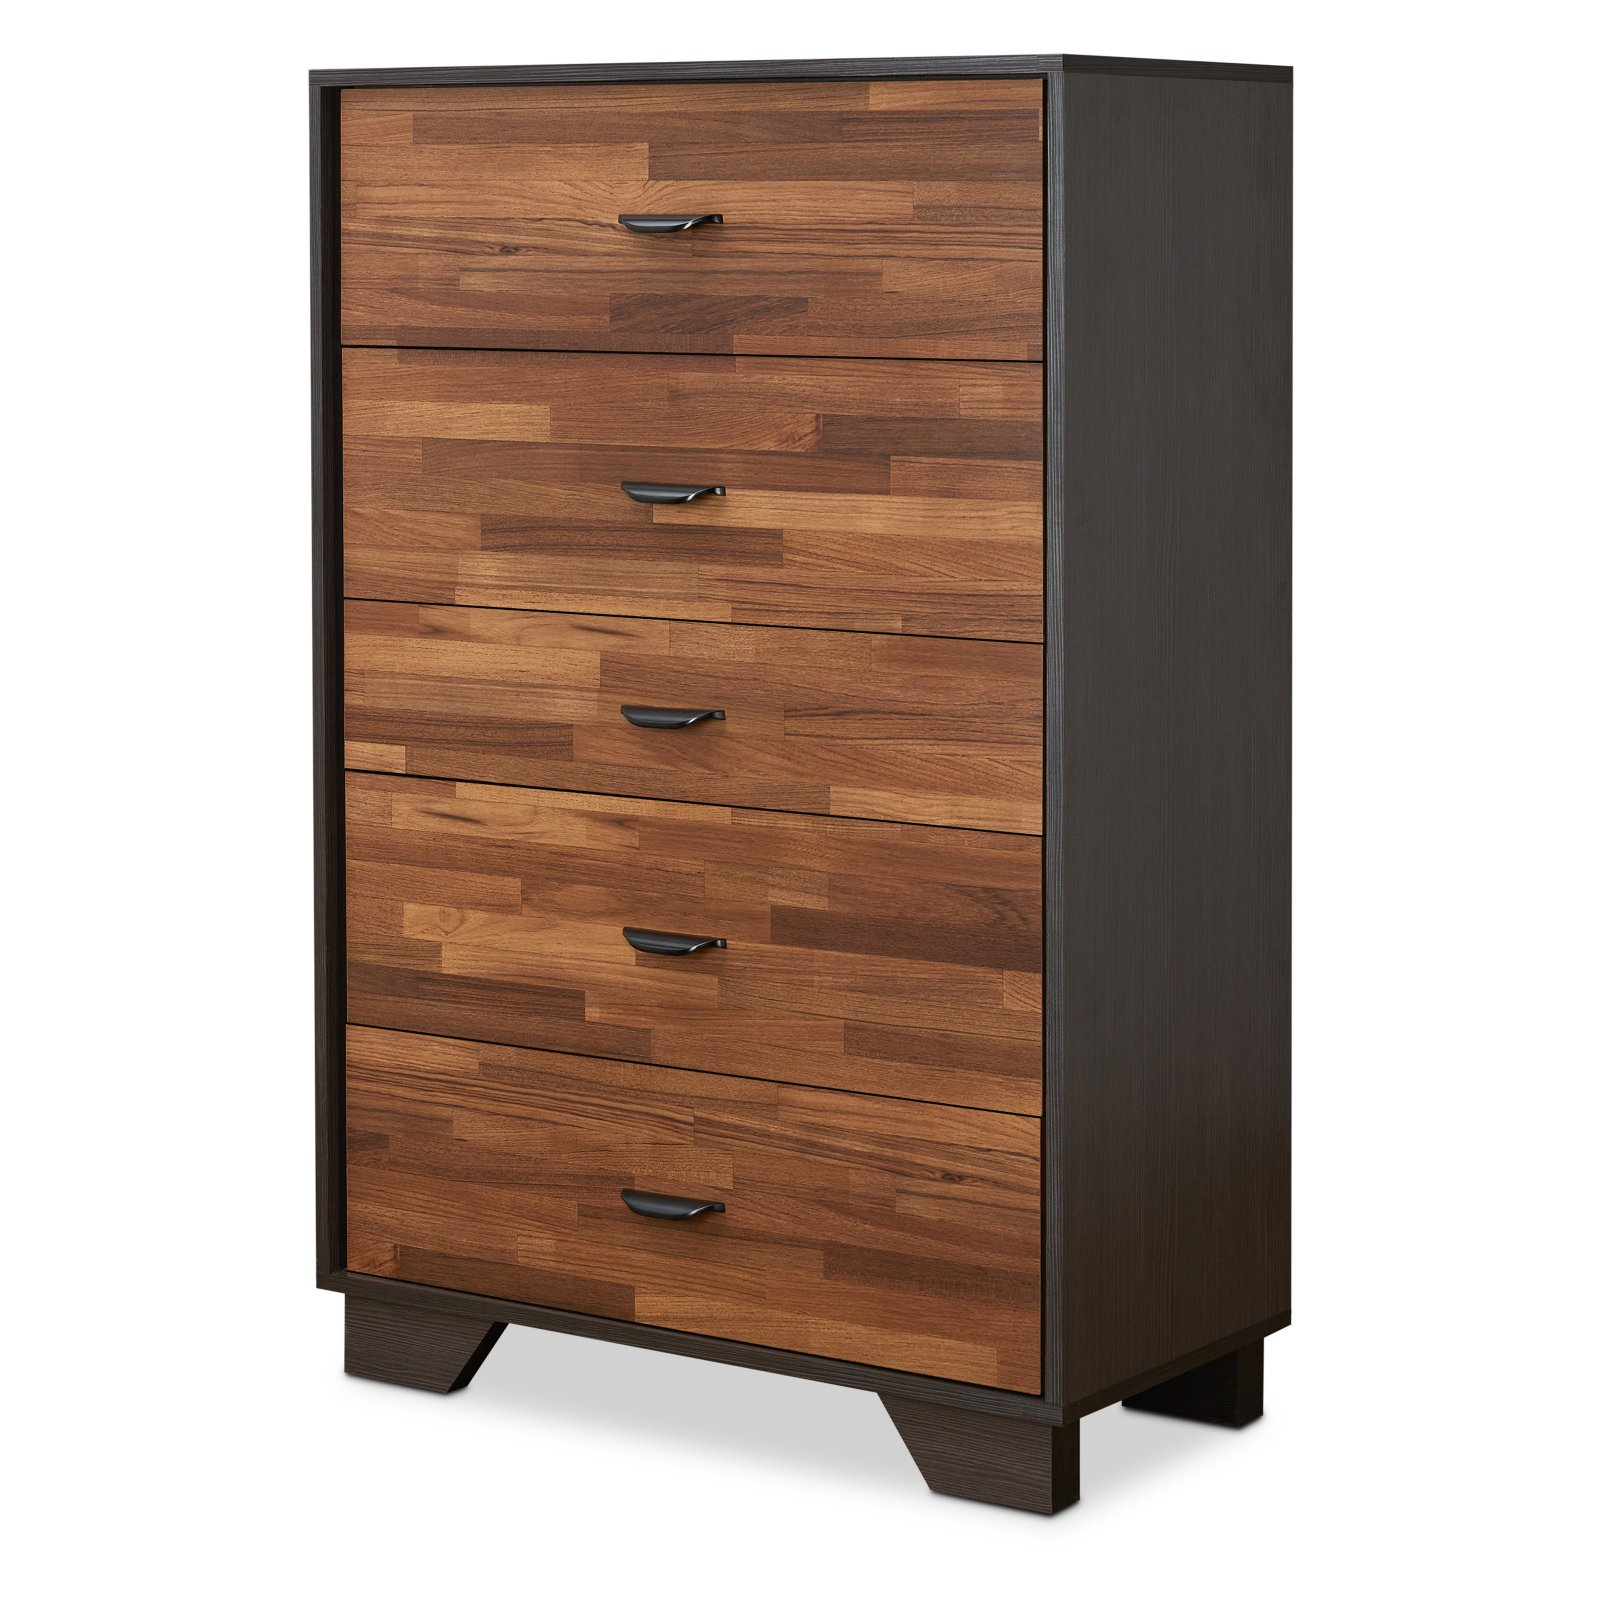 Acme Furniture Eloy Walnut U0026 Espresso Chest With Five Drawers   Walmart.com